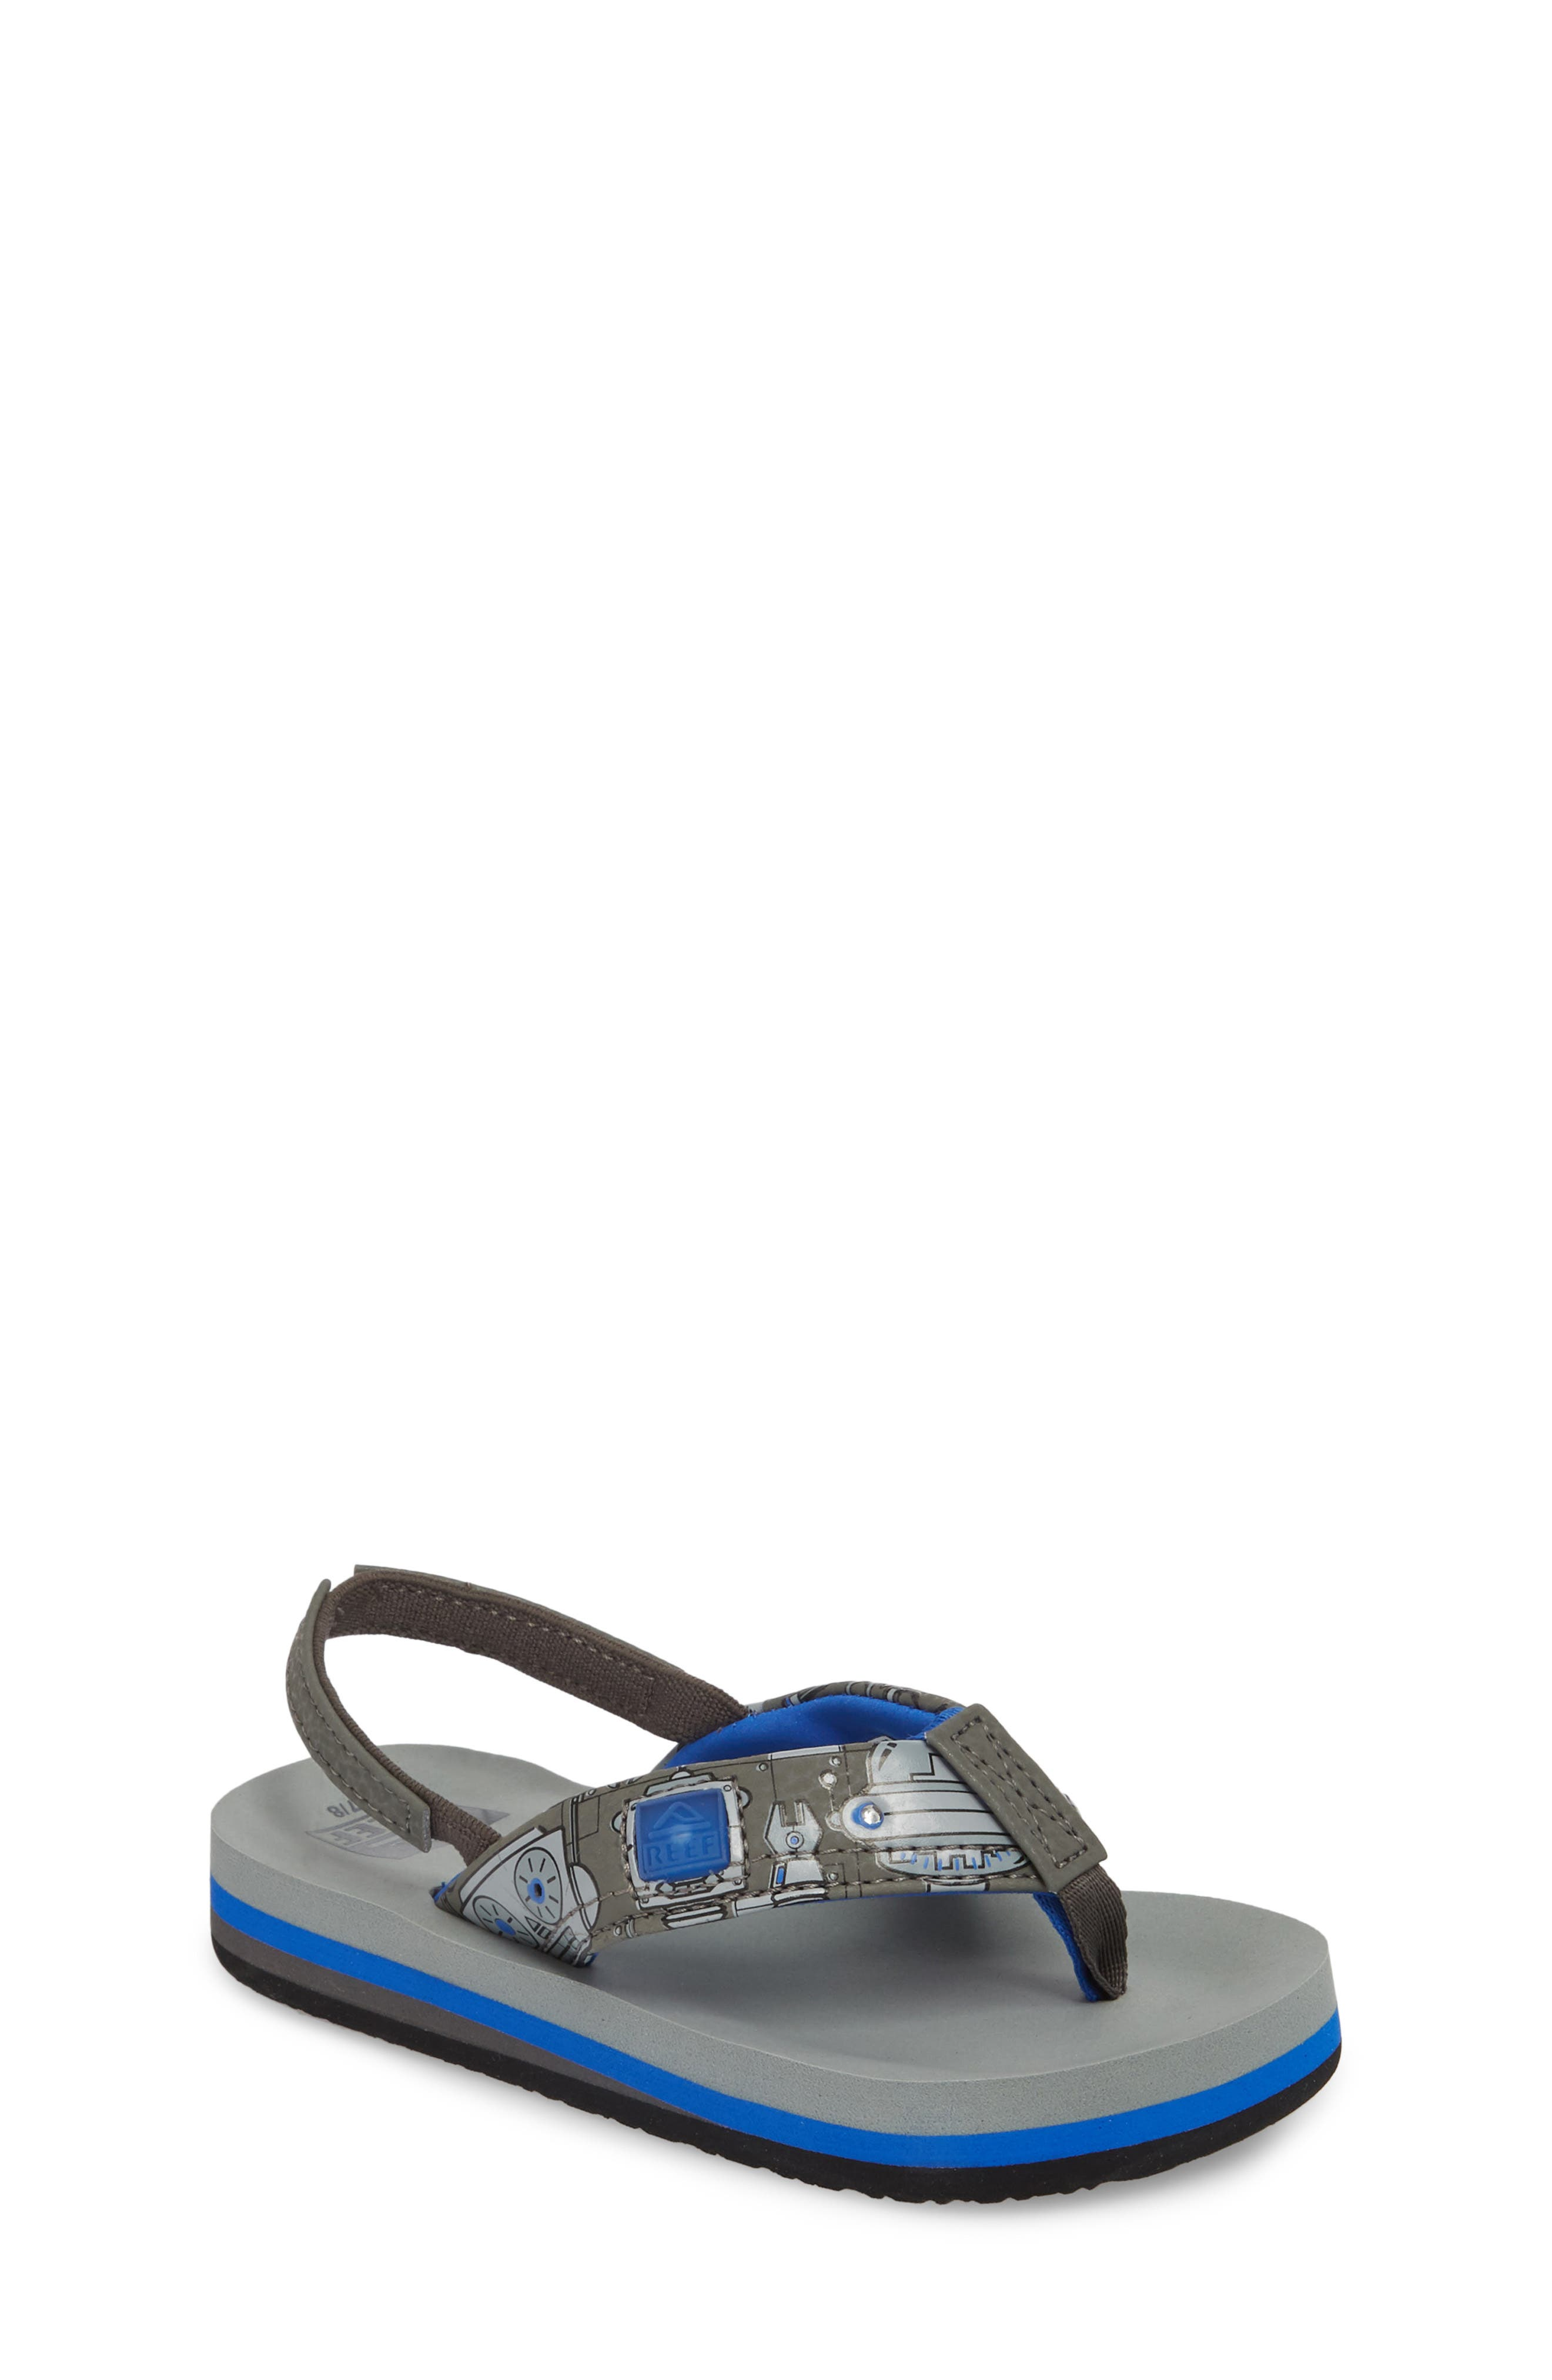 Ahi Light-Up Flip Flop,                         Main,                         color, Grey